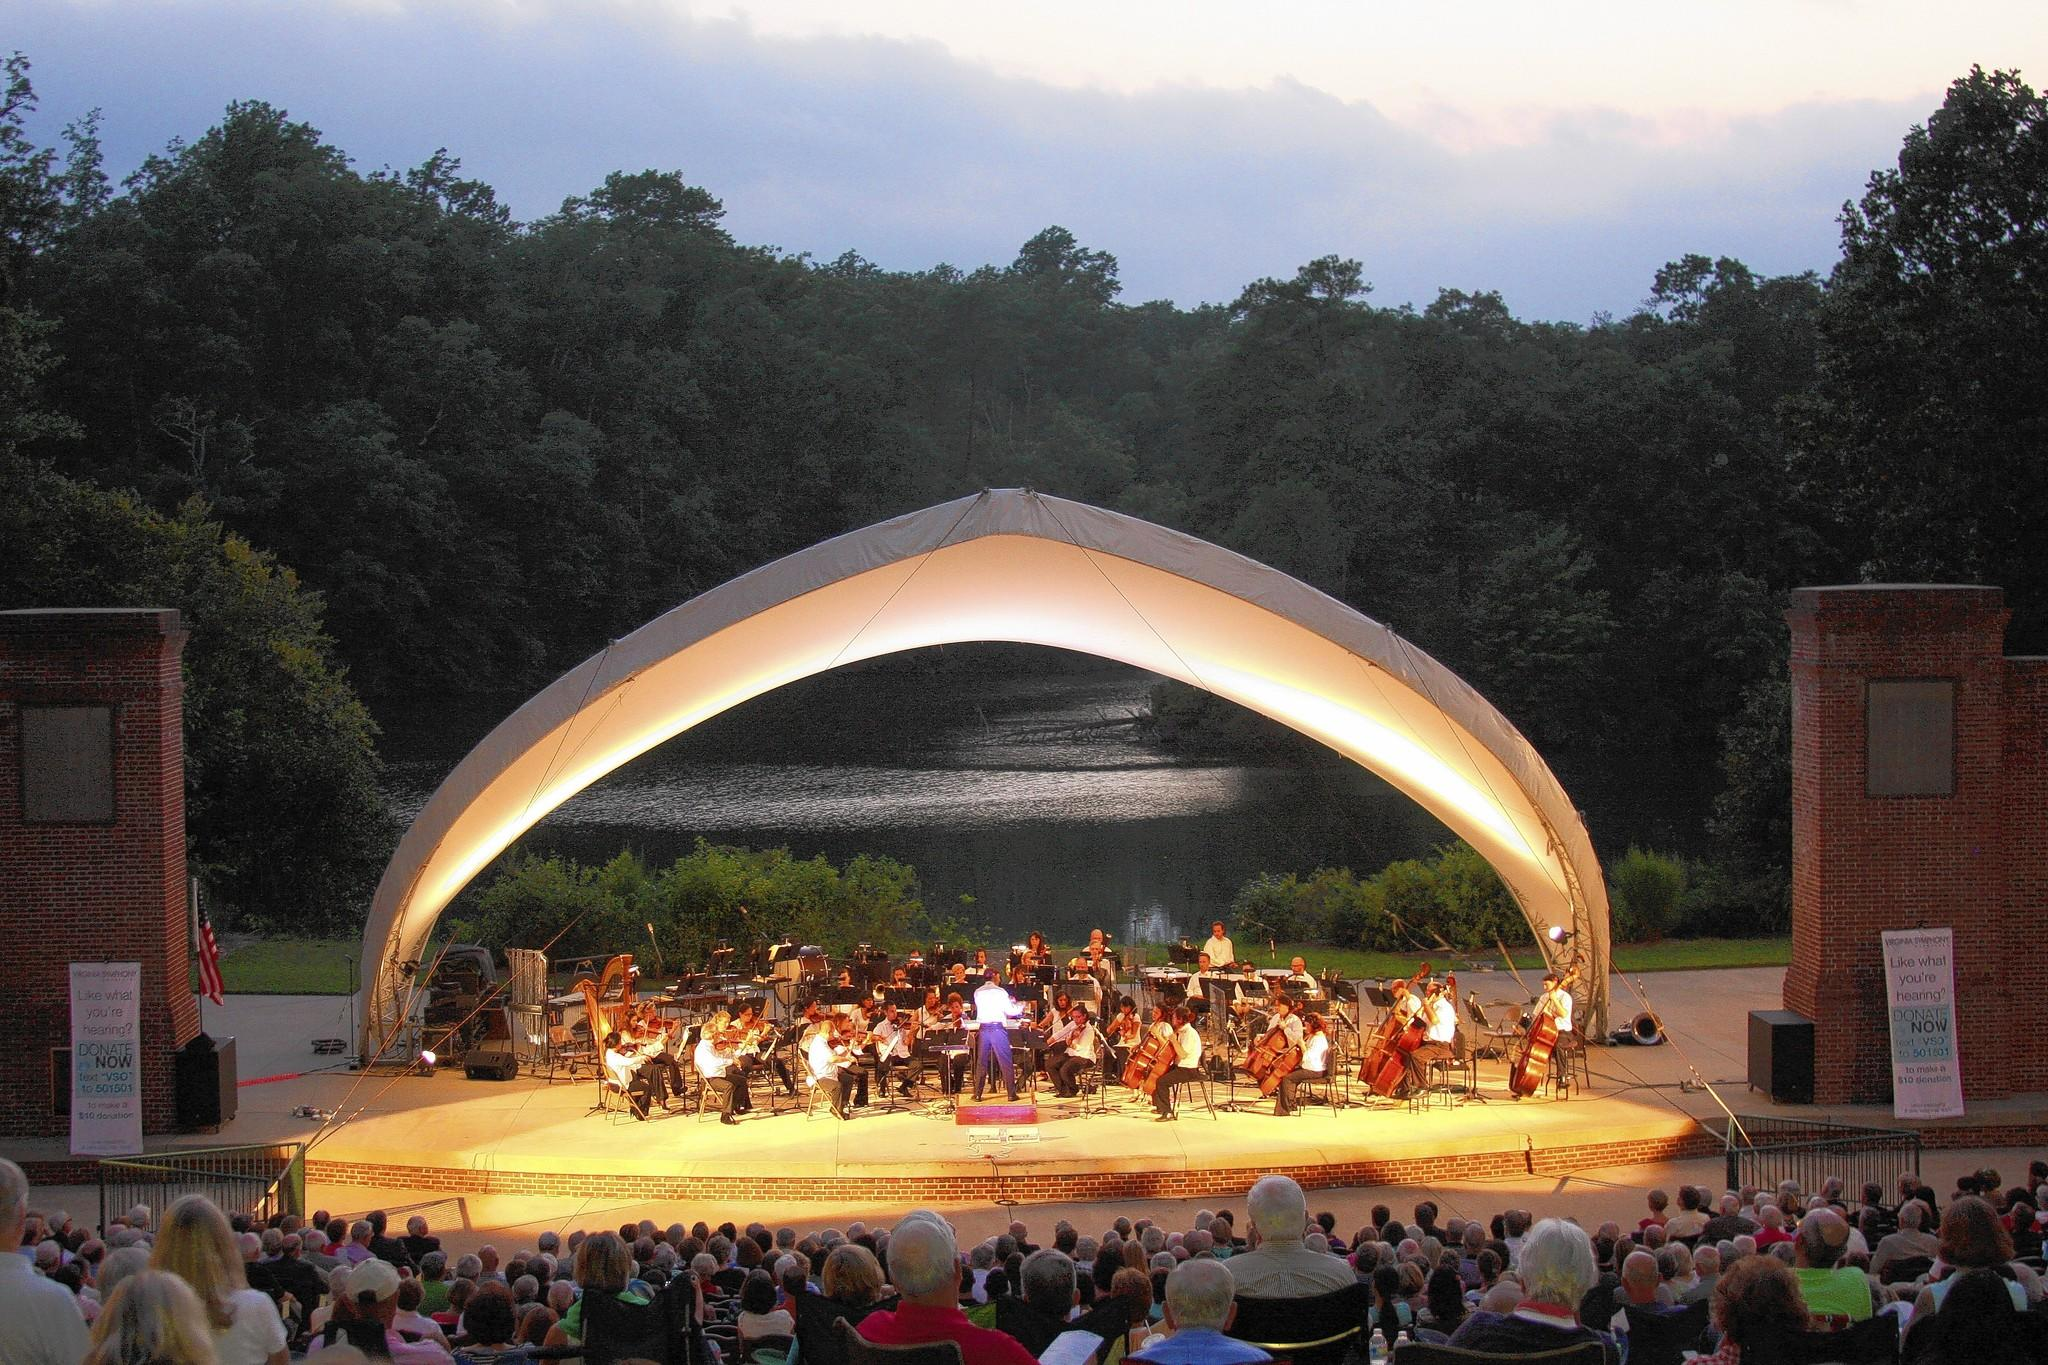 The Virginia Symphony began its series of free outdoor concerts on Thursday, Aug. 28, at the Lake Matoaka Amphitheatre in Williamsburg.